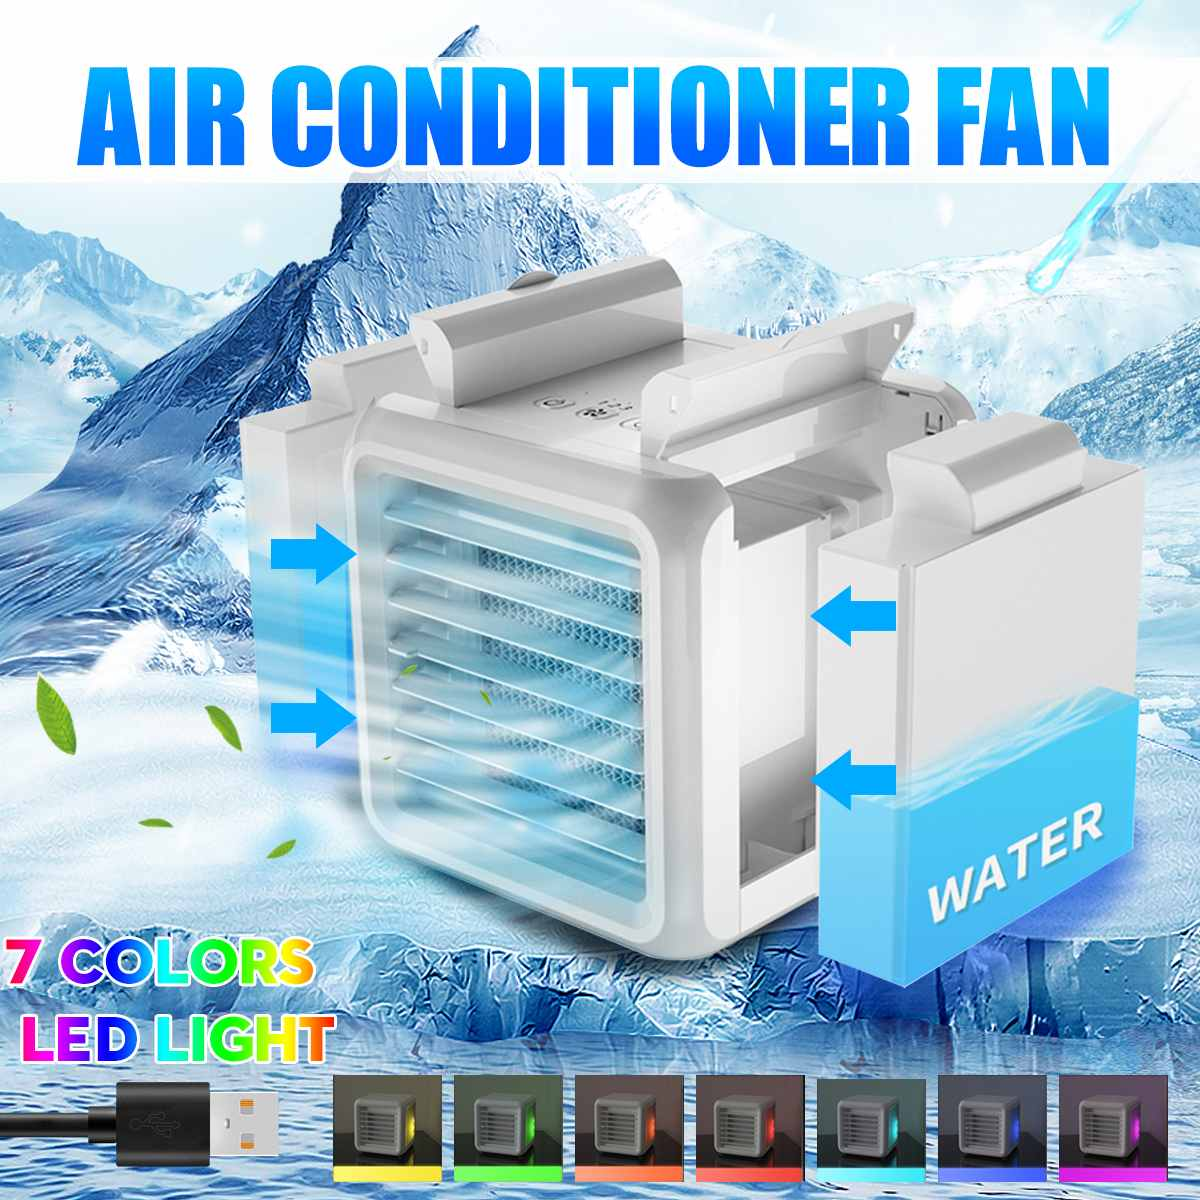 Portable Mini Air Conditioner Fan 7-Colors LED Conditioning Humidifier Purifier USB Desktop Air Cooler Fan + 2 Water Tanks Home